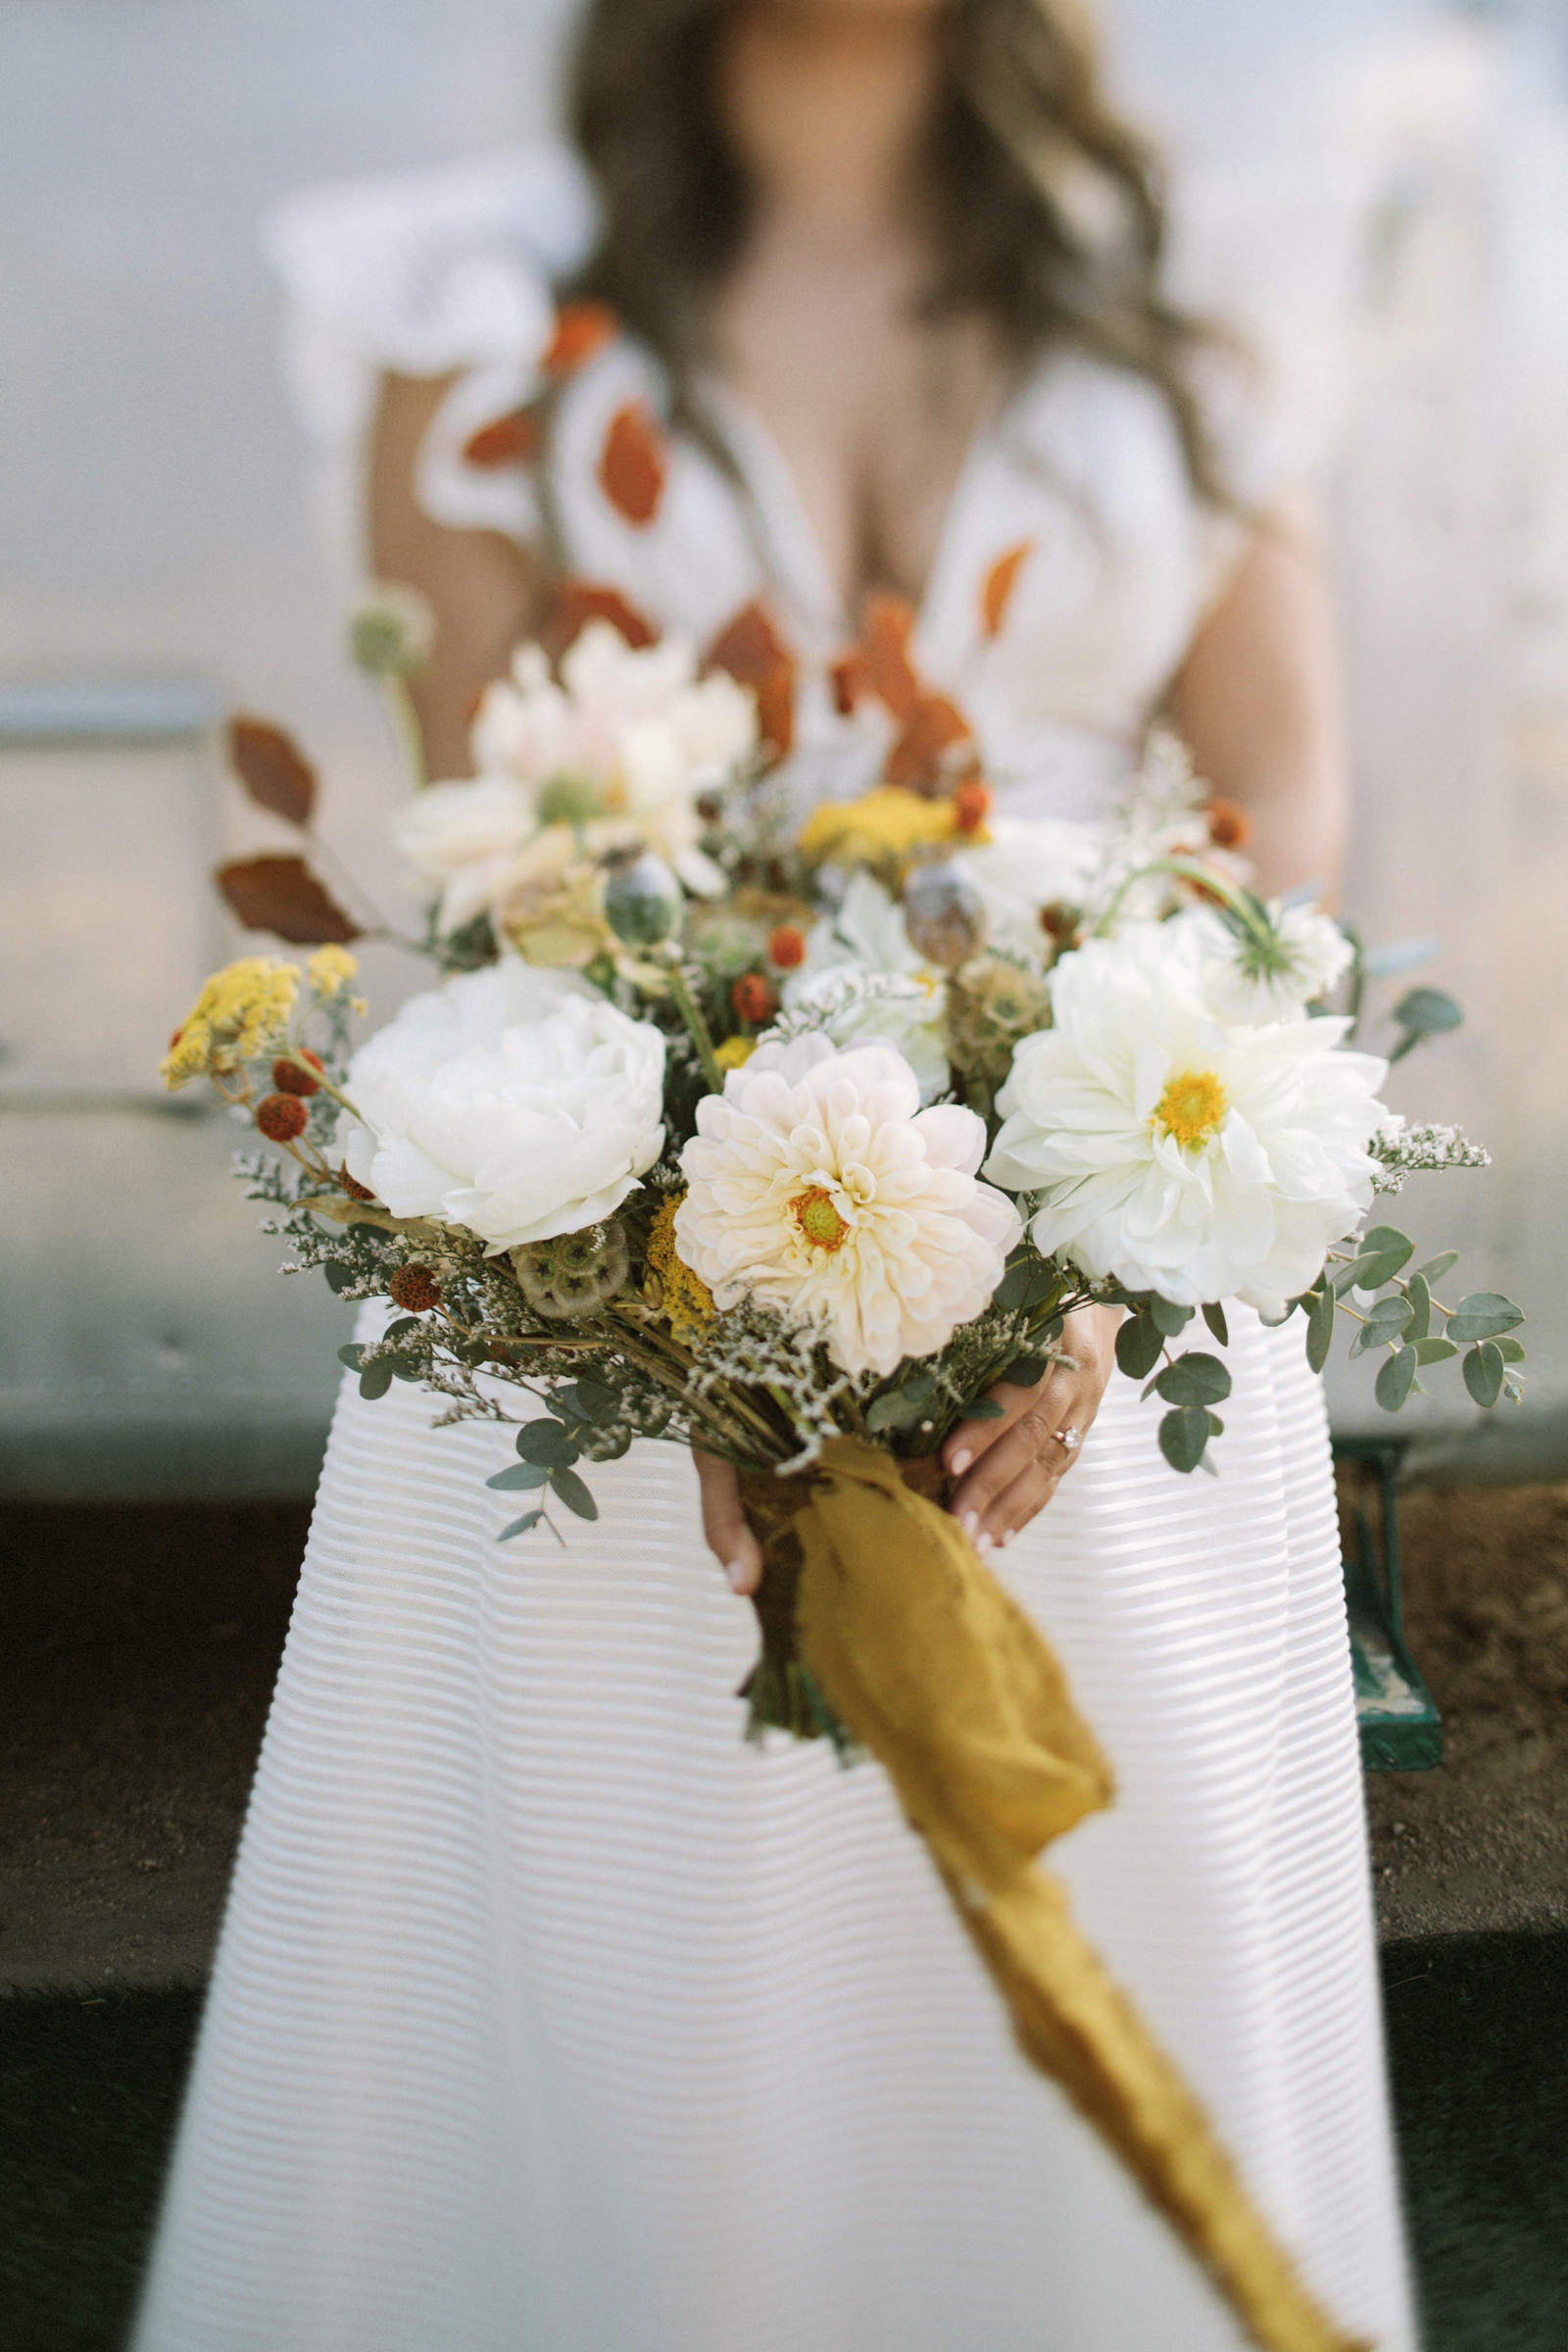 Bride featuring splendid floral bouquet - photo by Jonas Seaman Photography